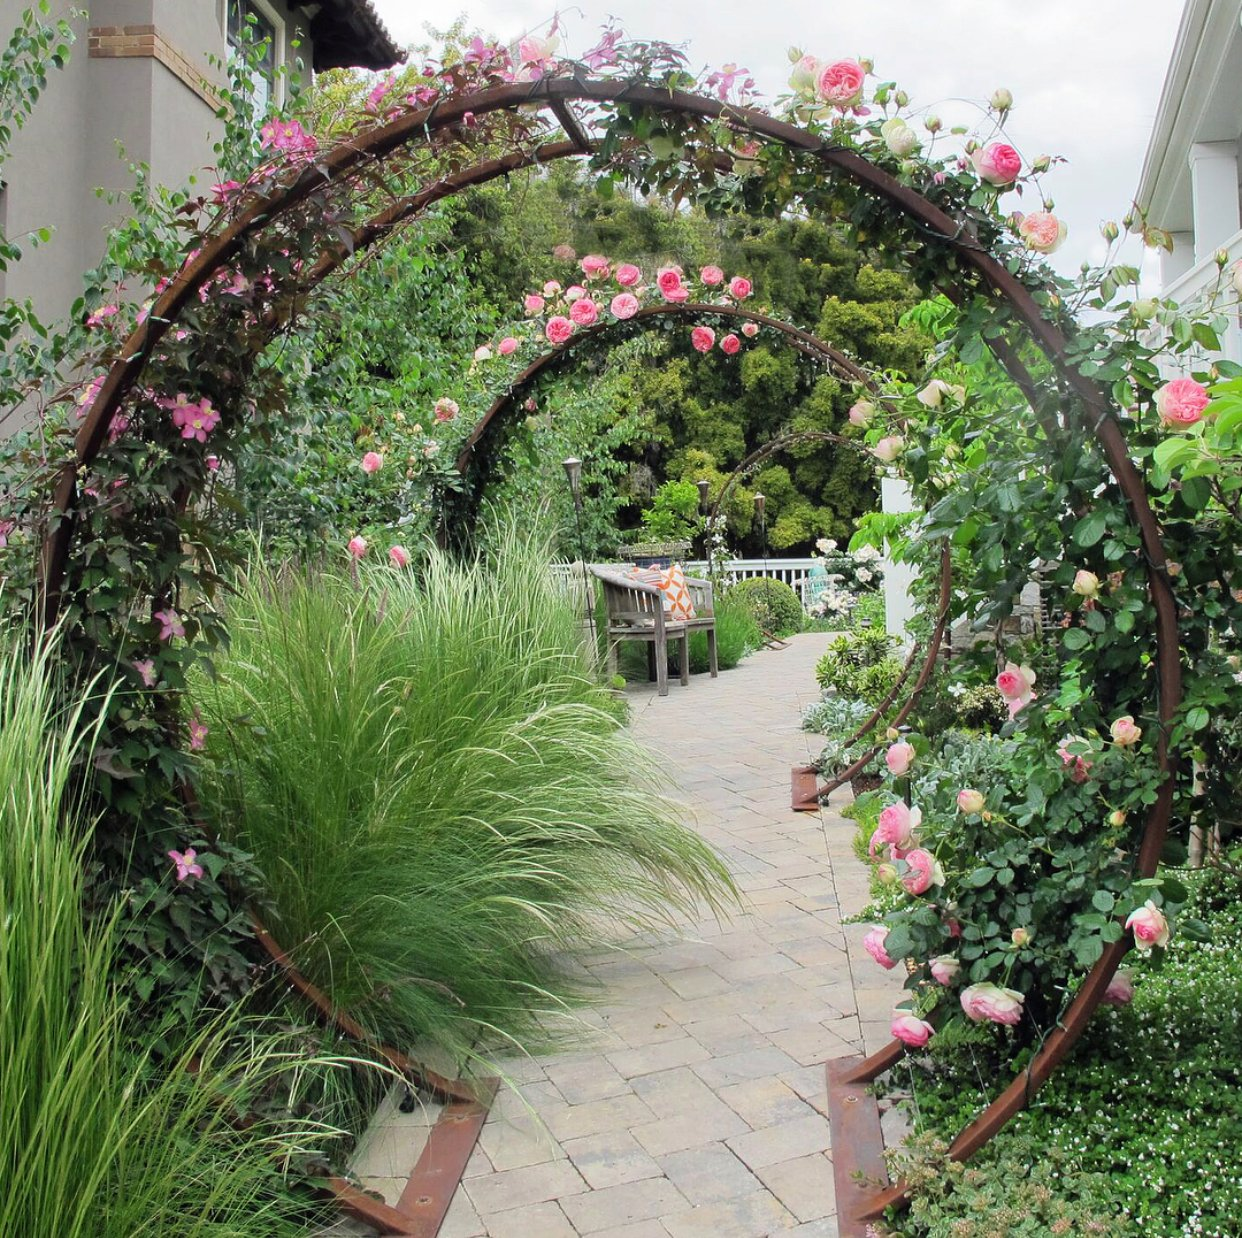 Gracie_modern_arbor_walkway_roses_arches ideas for garden grids that are inexpensive and look great